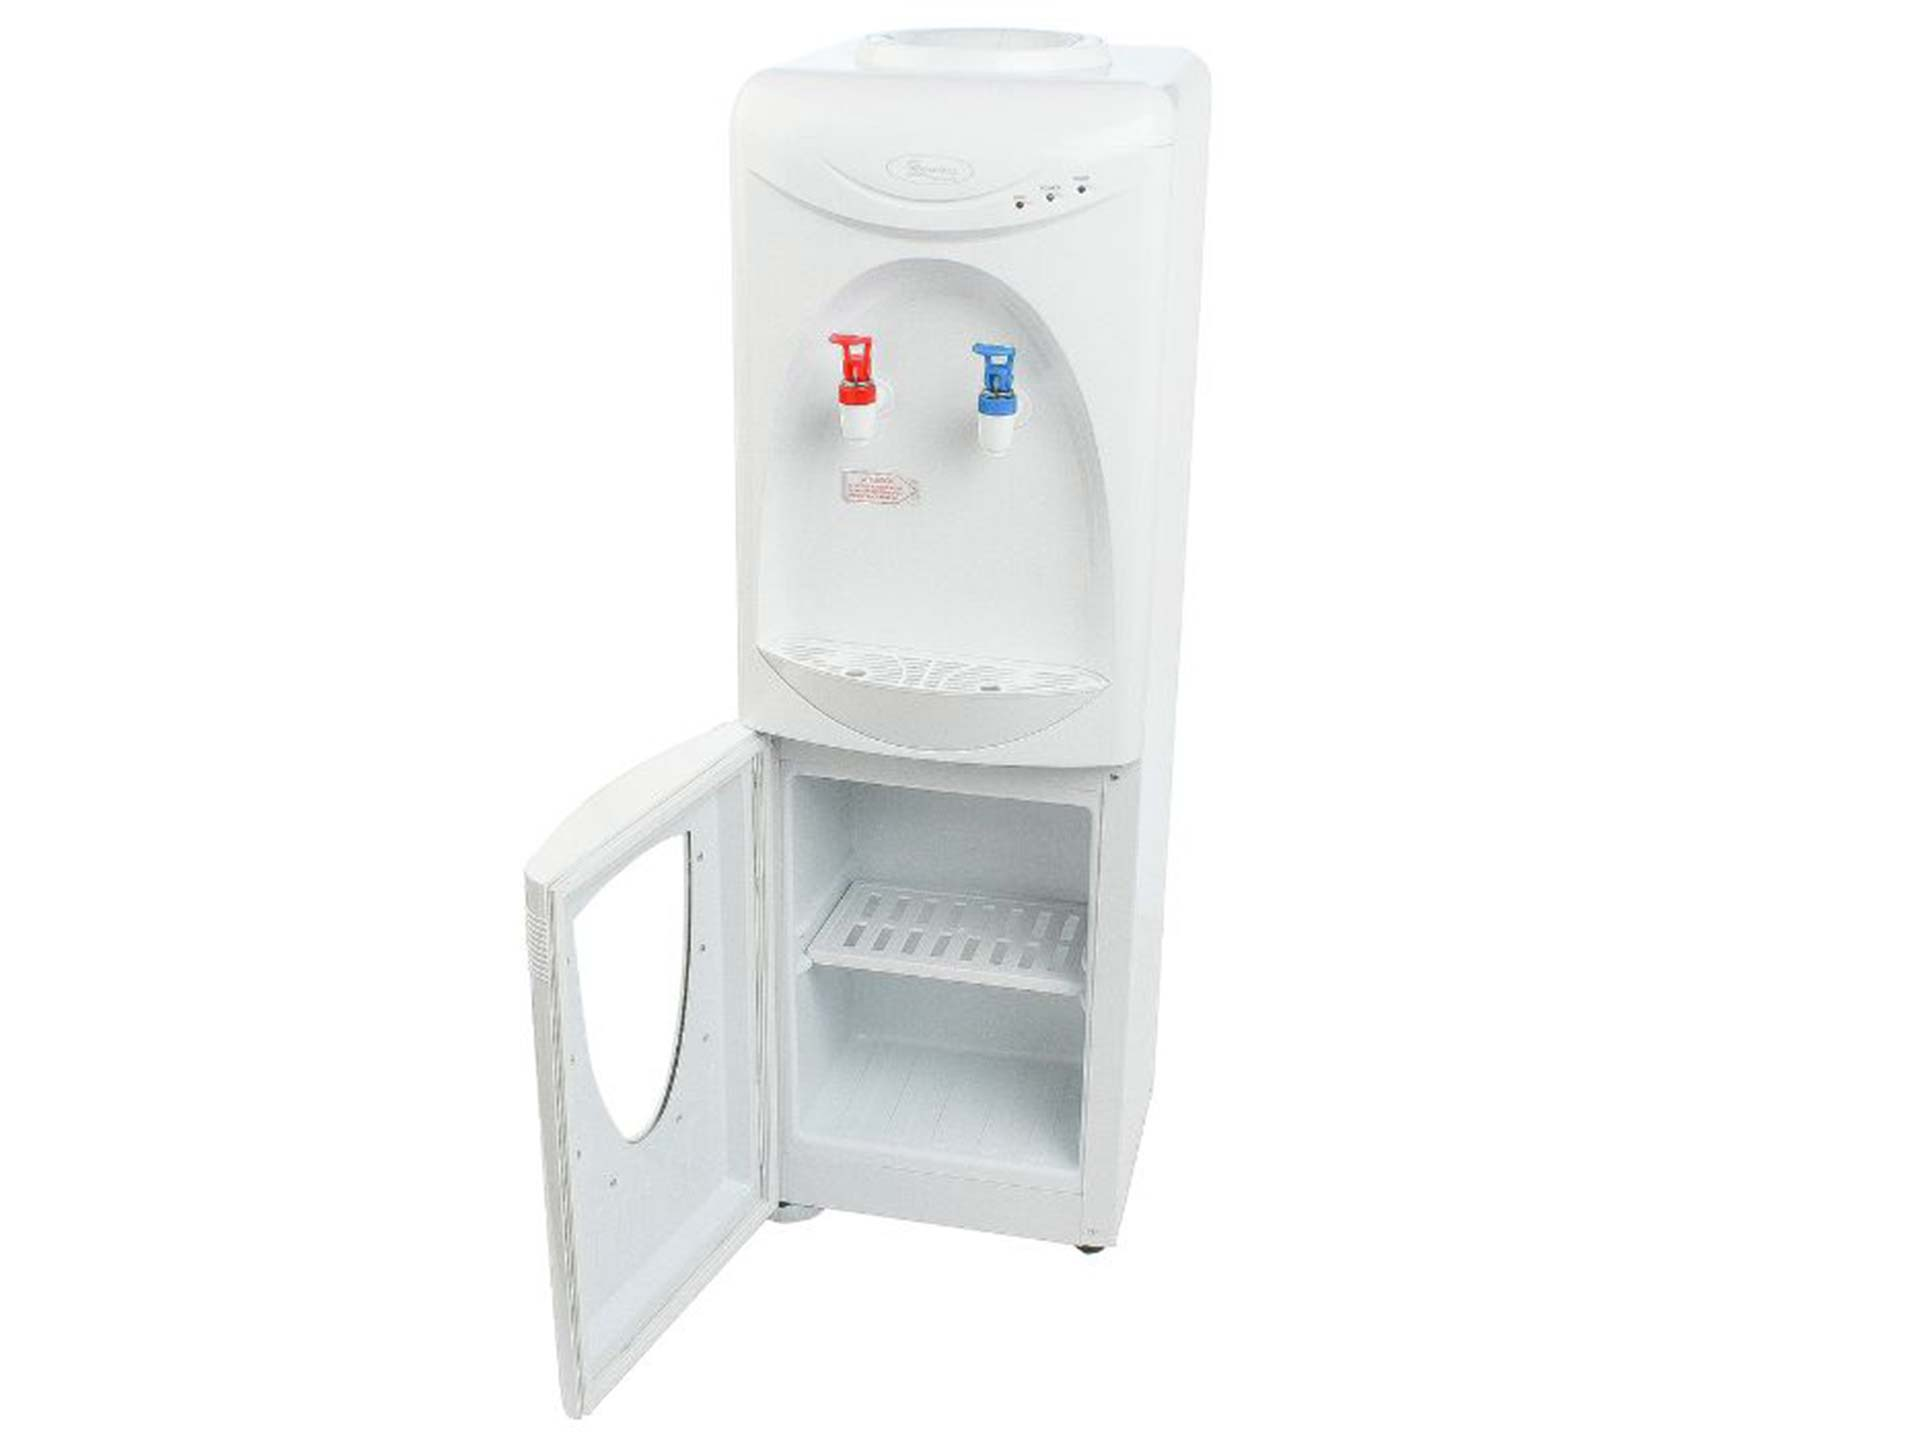 Kensoko Com Ramtons Rm 417 Hot And Normal Free Standing Water